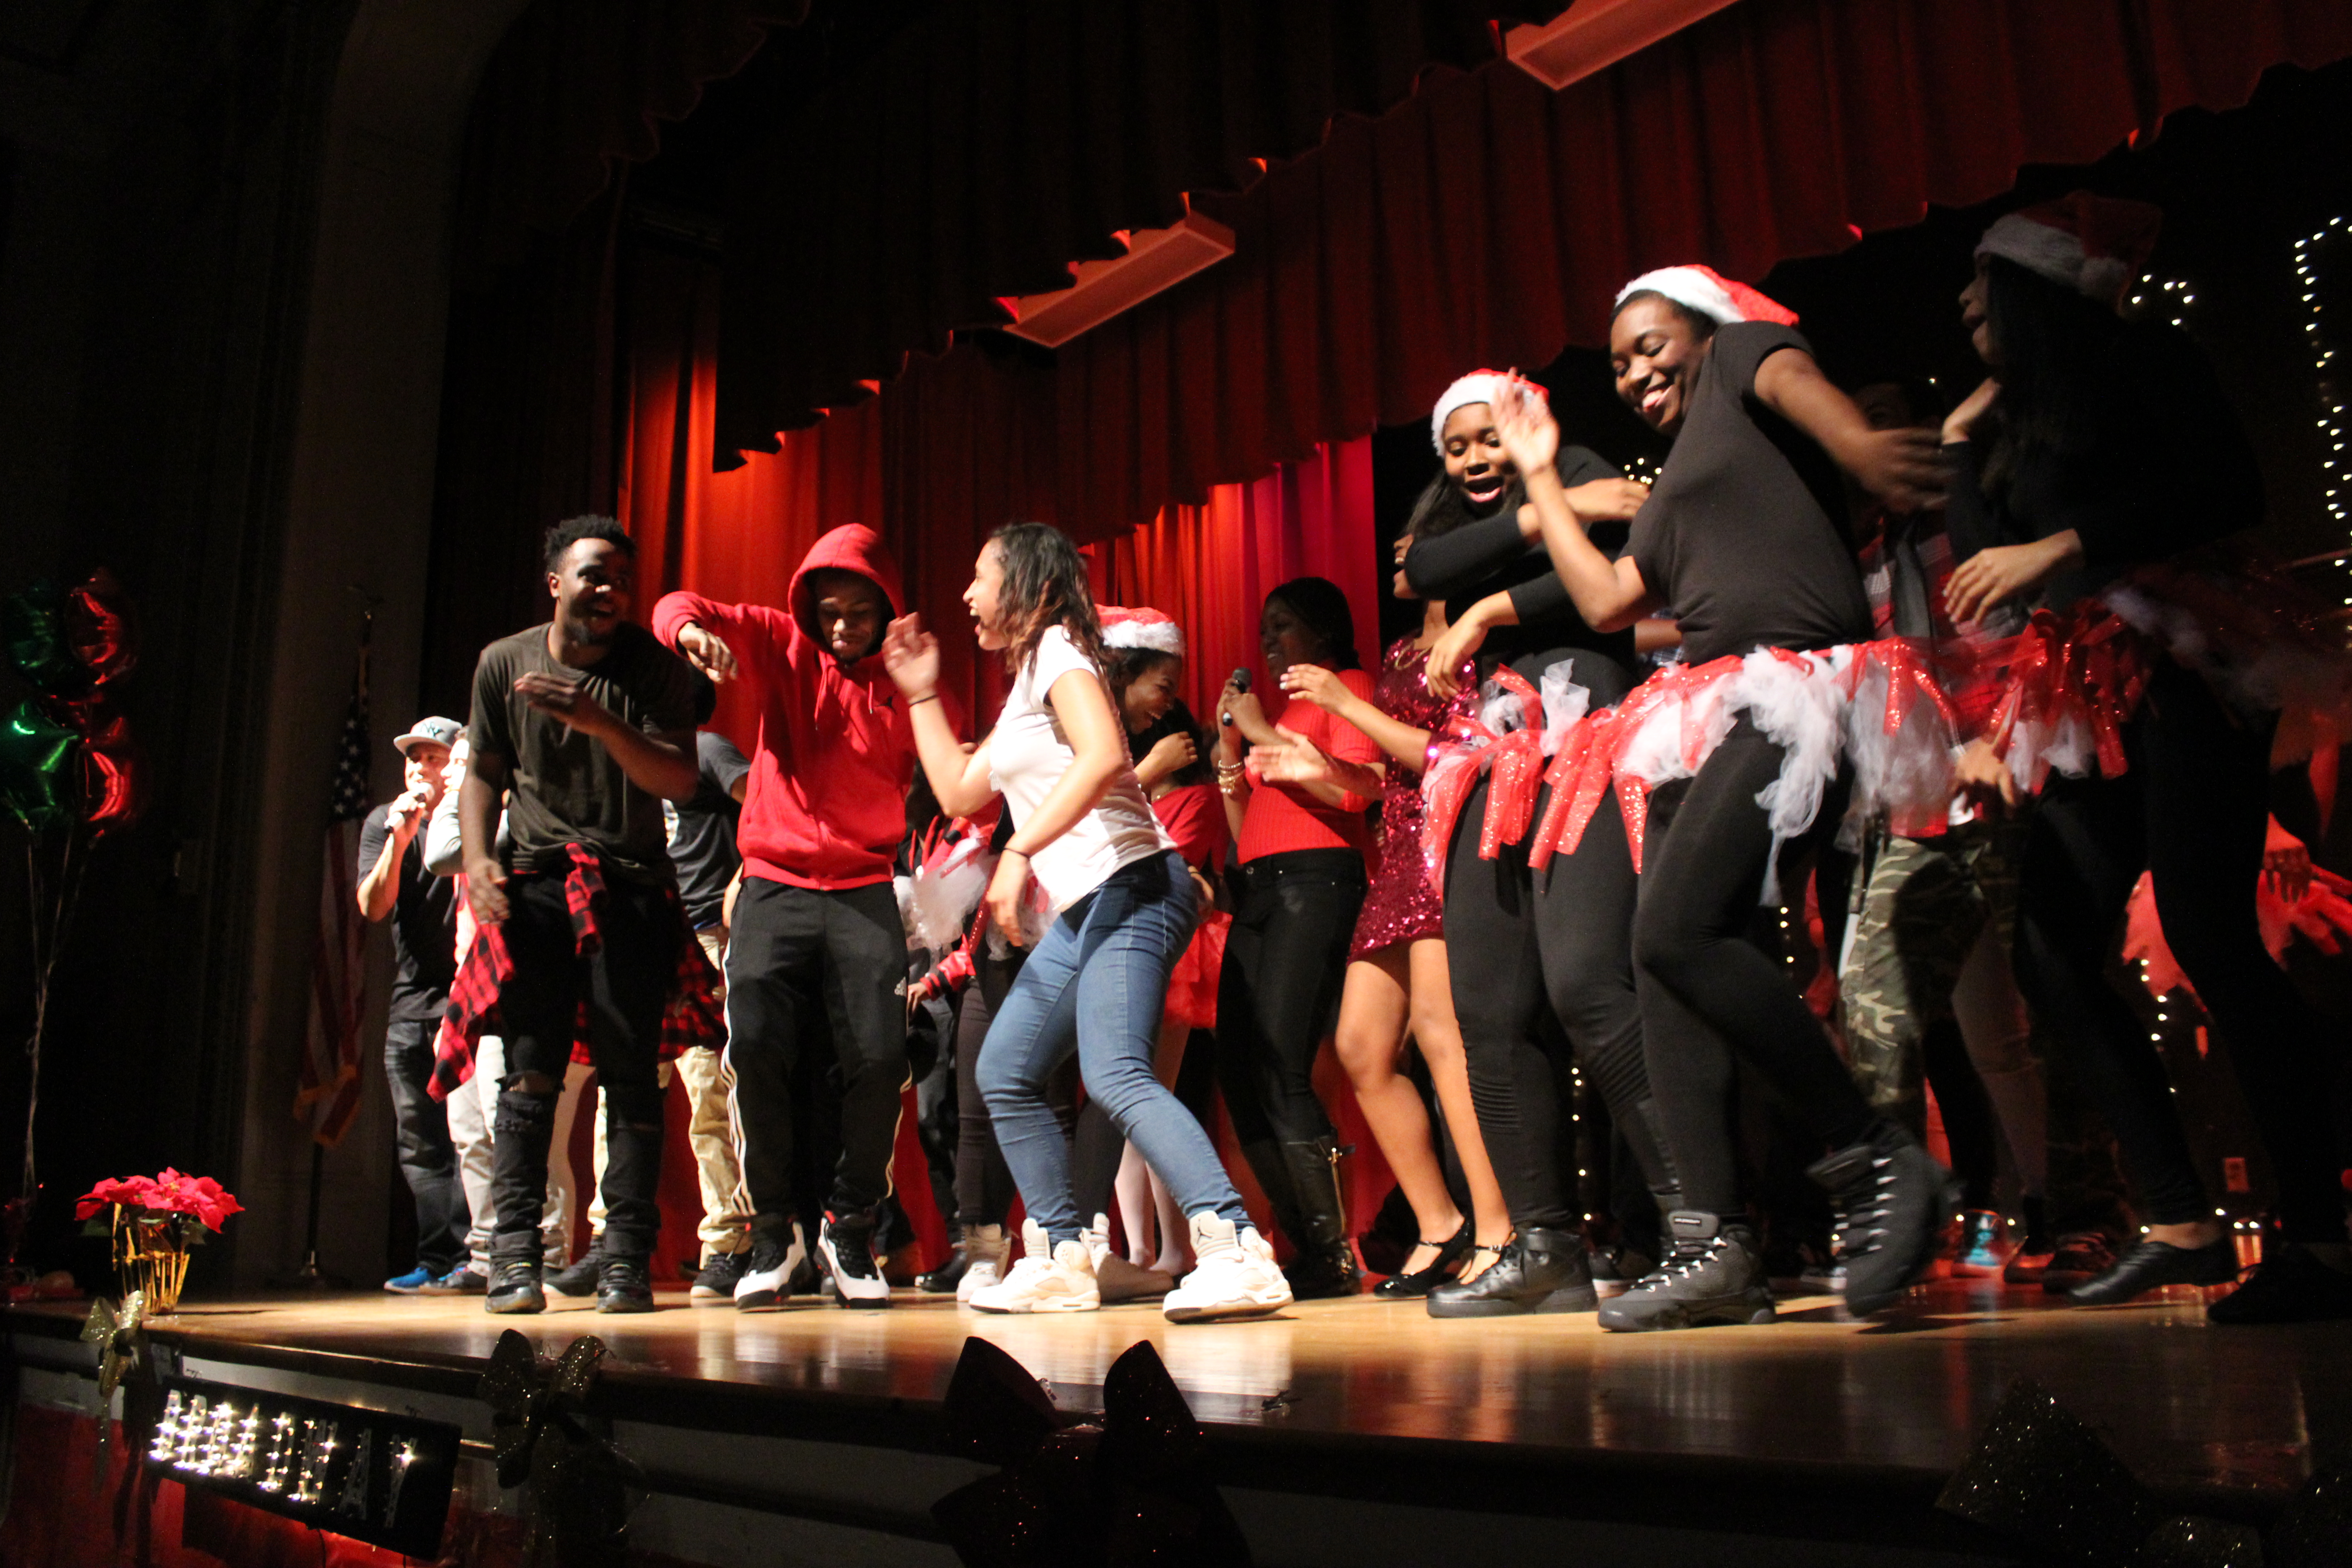 Blizzard of Talent at Innovation's Holiday Showcase